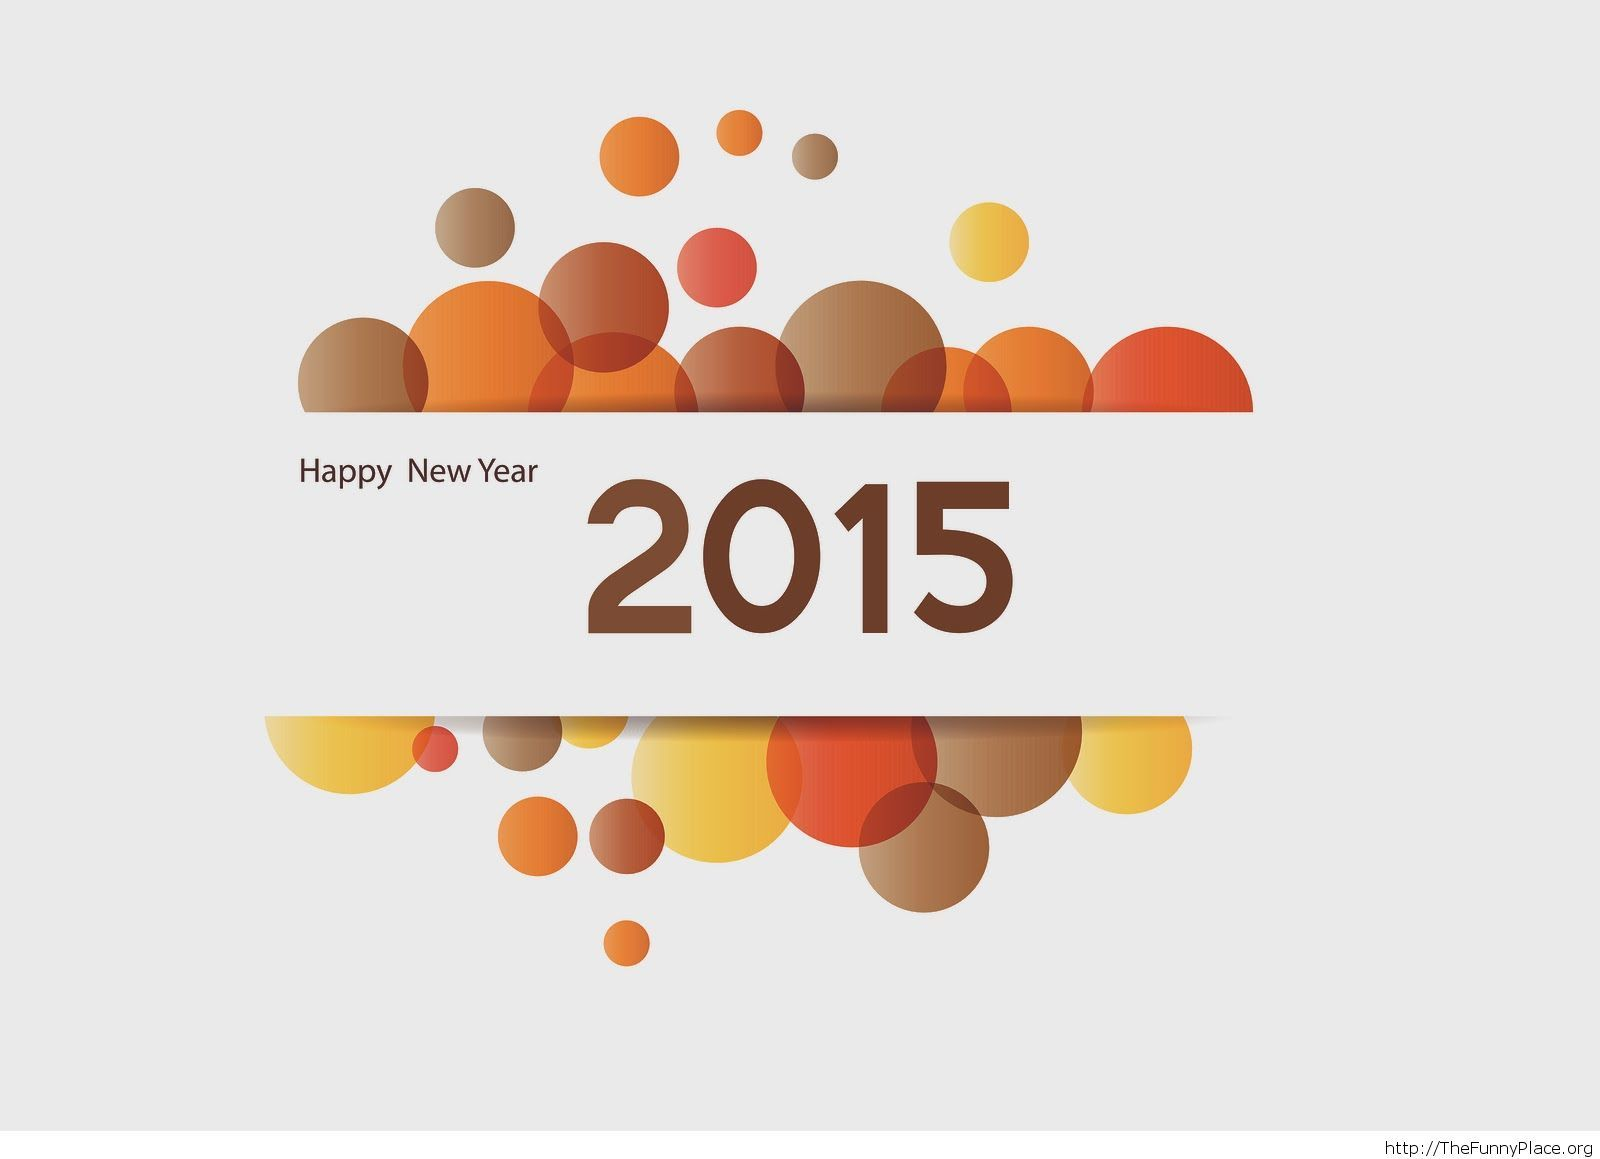 Happy New Year 2015 wallpaper colours